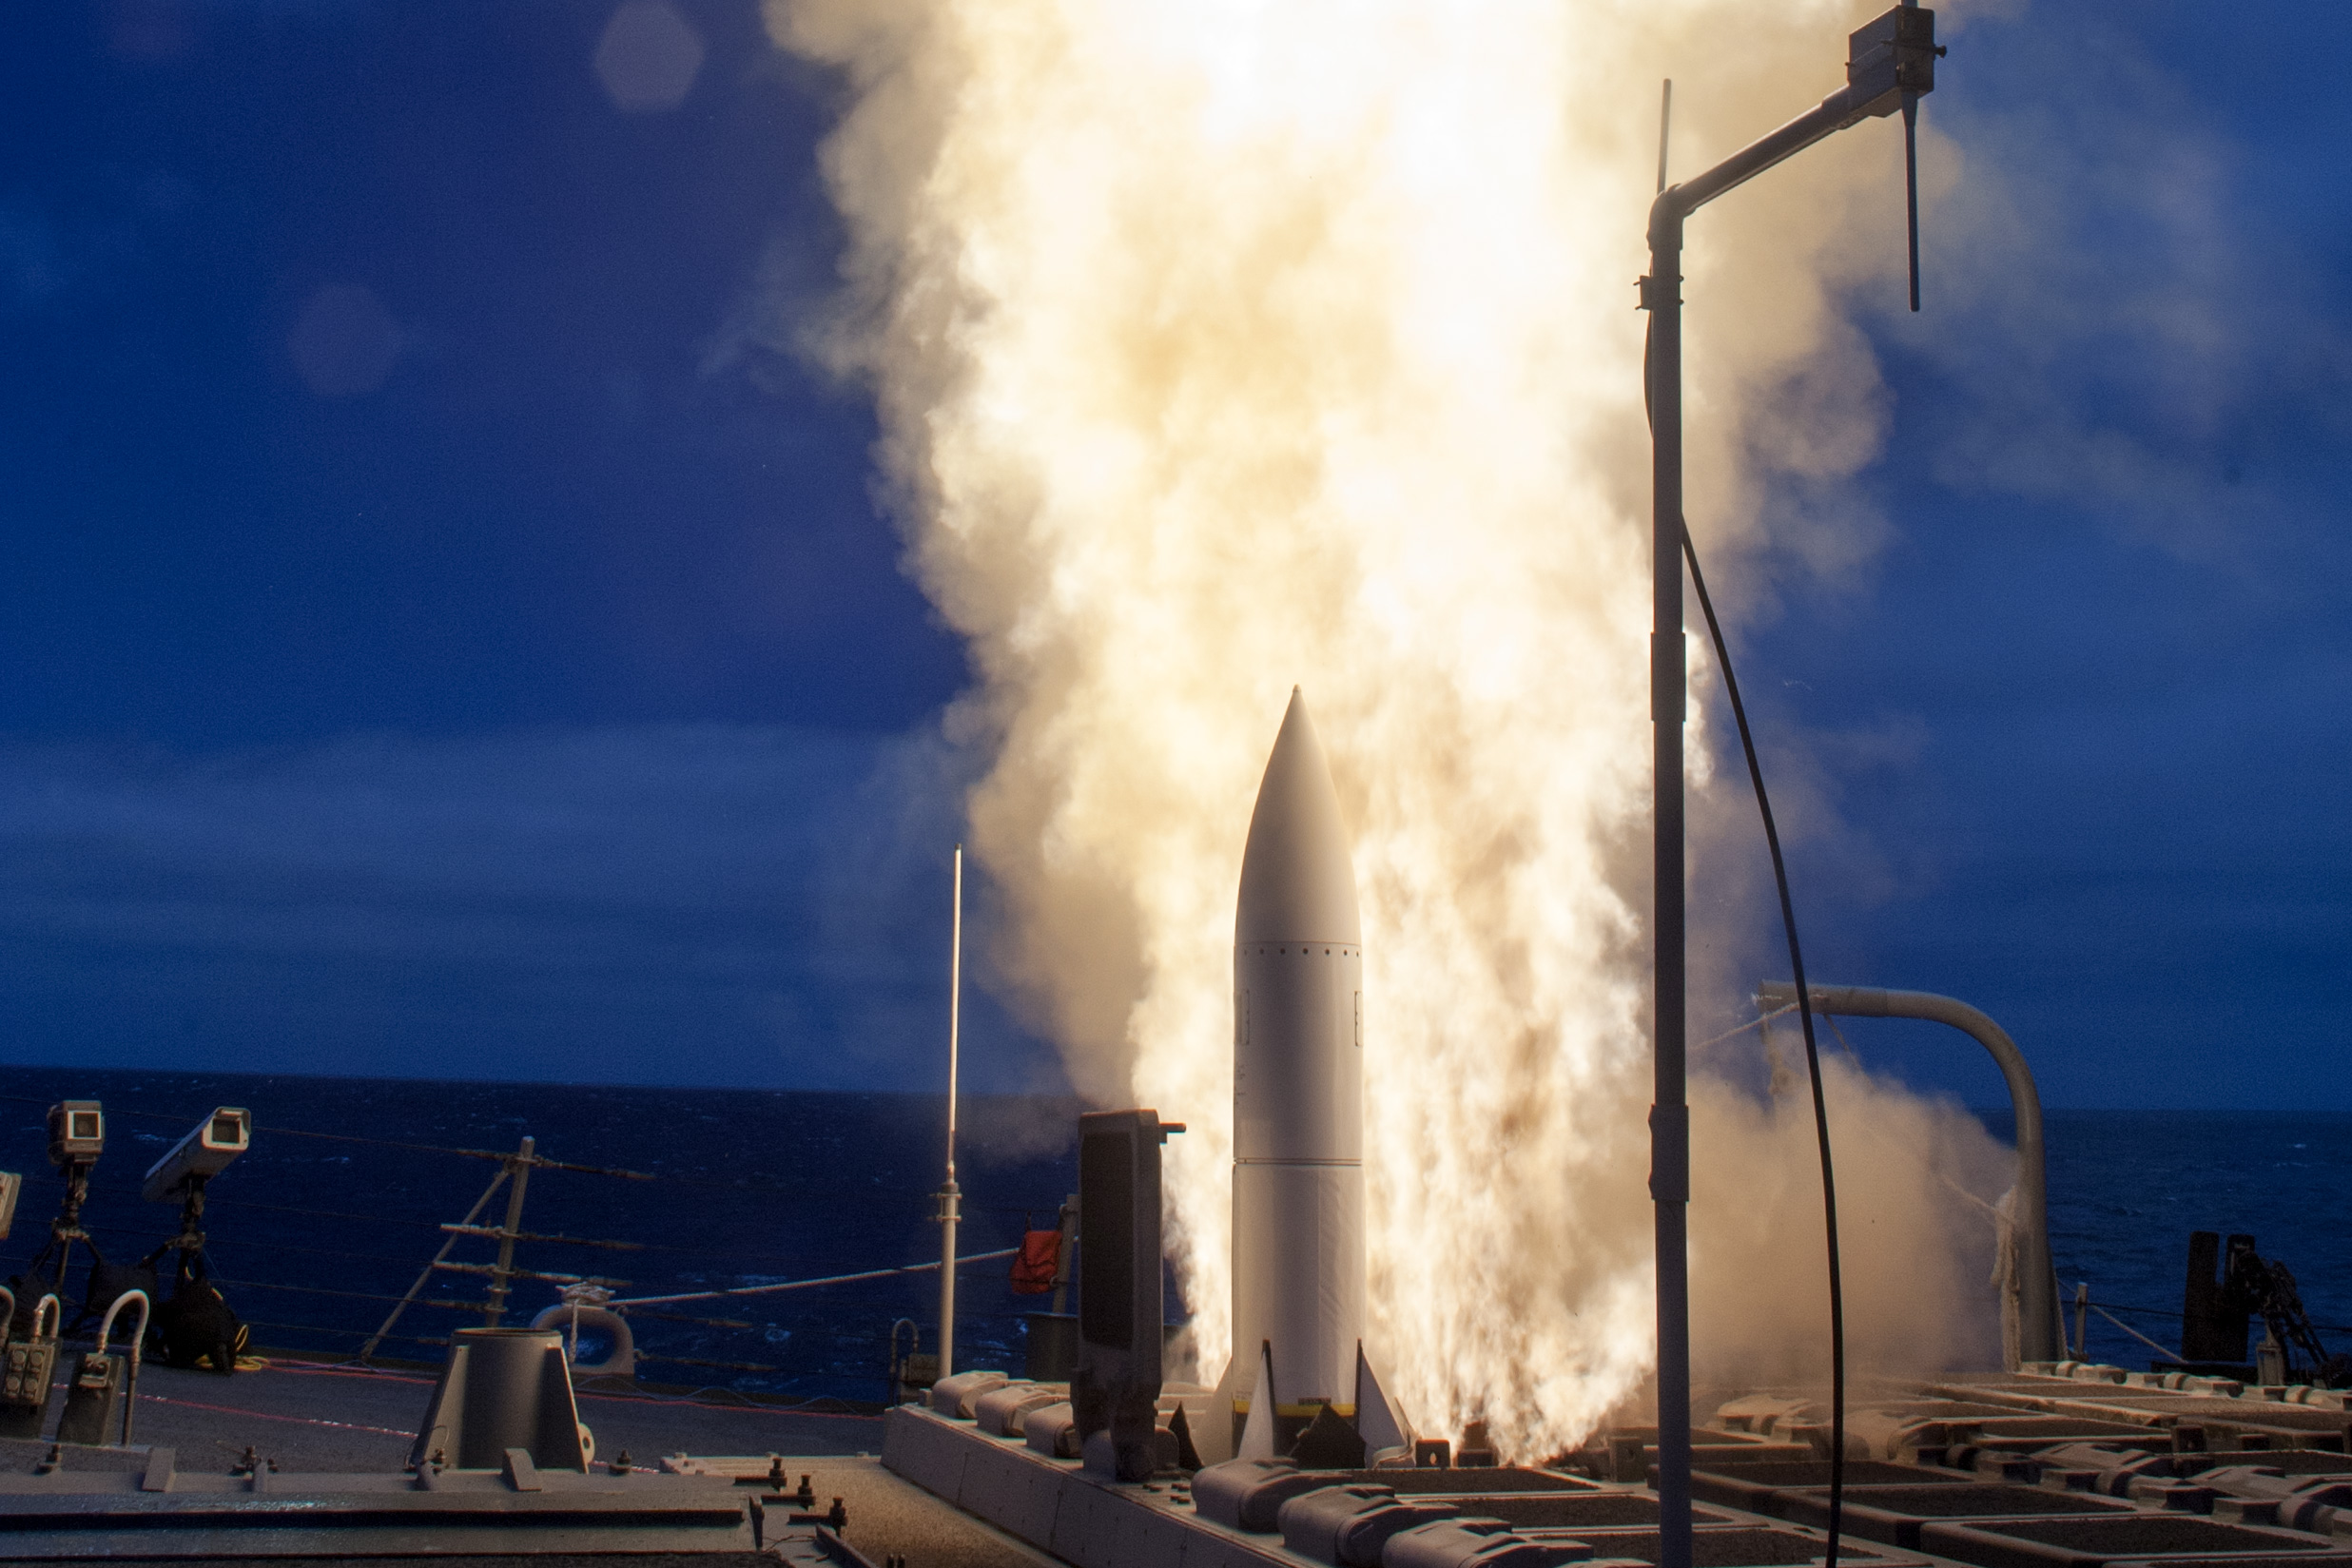 The Arleigh-Burke class guided-missile destroyer USS John Paul Jones (DDG 53) launches a Standard Missile 6 (SM-6) during a live-fire test of the ship's Aegis Weapons System in June 2014. US Navy photo.